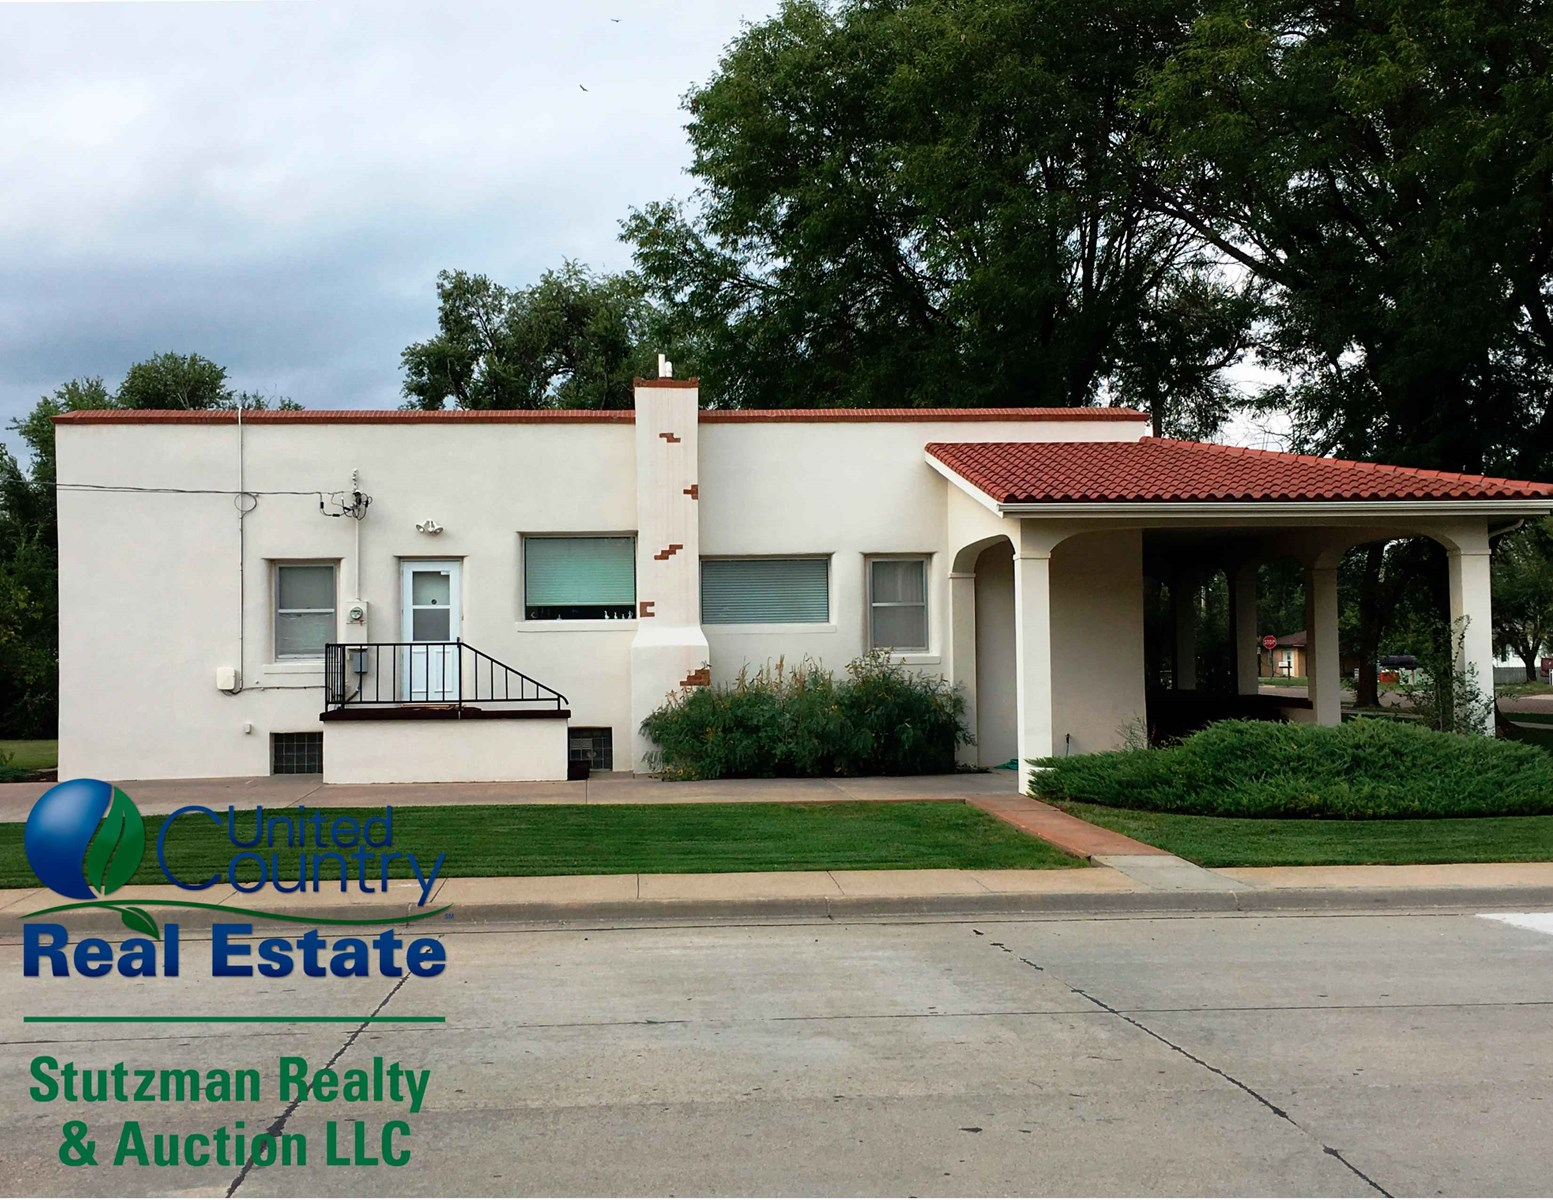 ABSOLUTE - NO RESERVE AUCTION IN ULYSSES, KANSAS